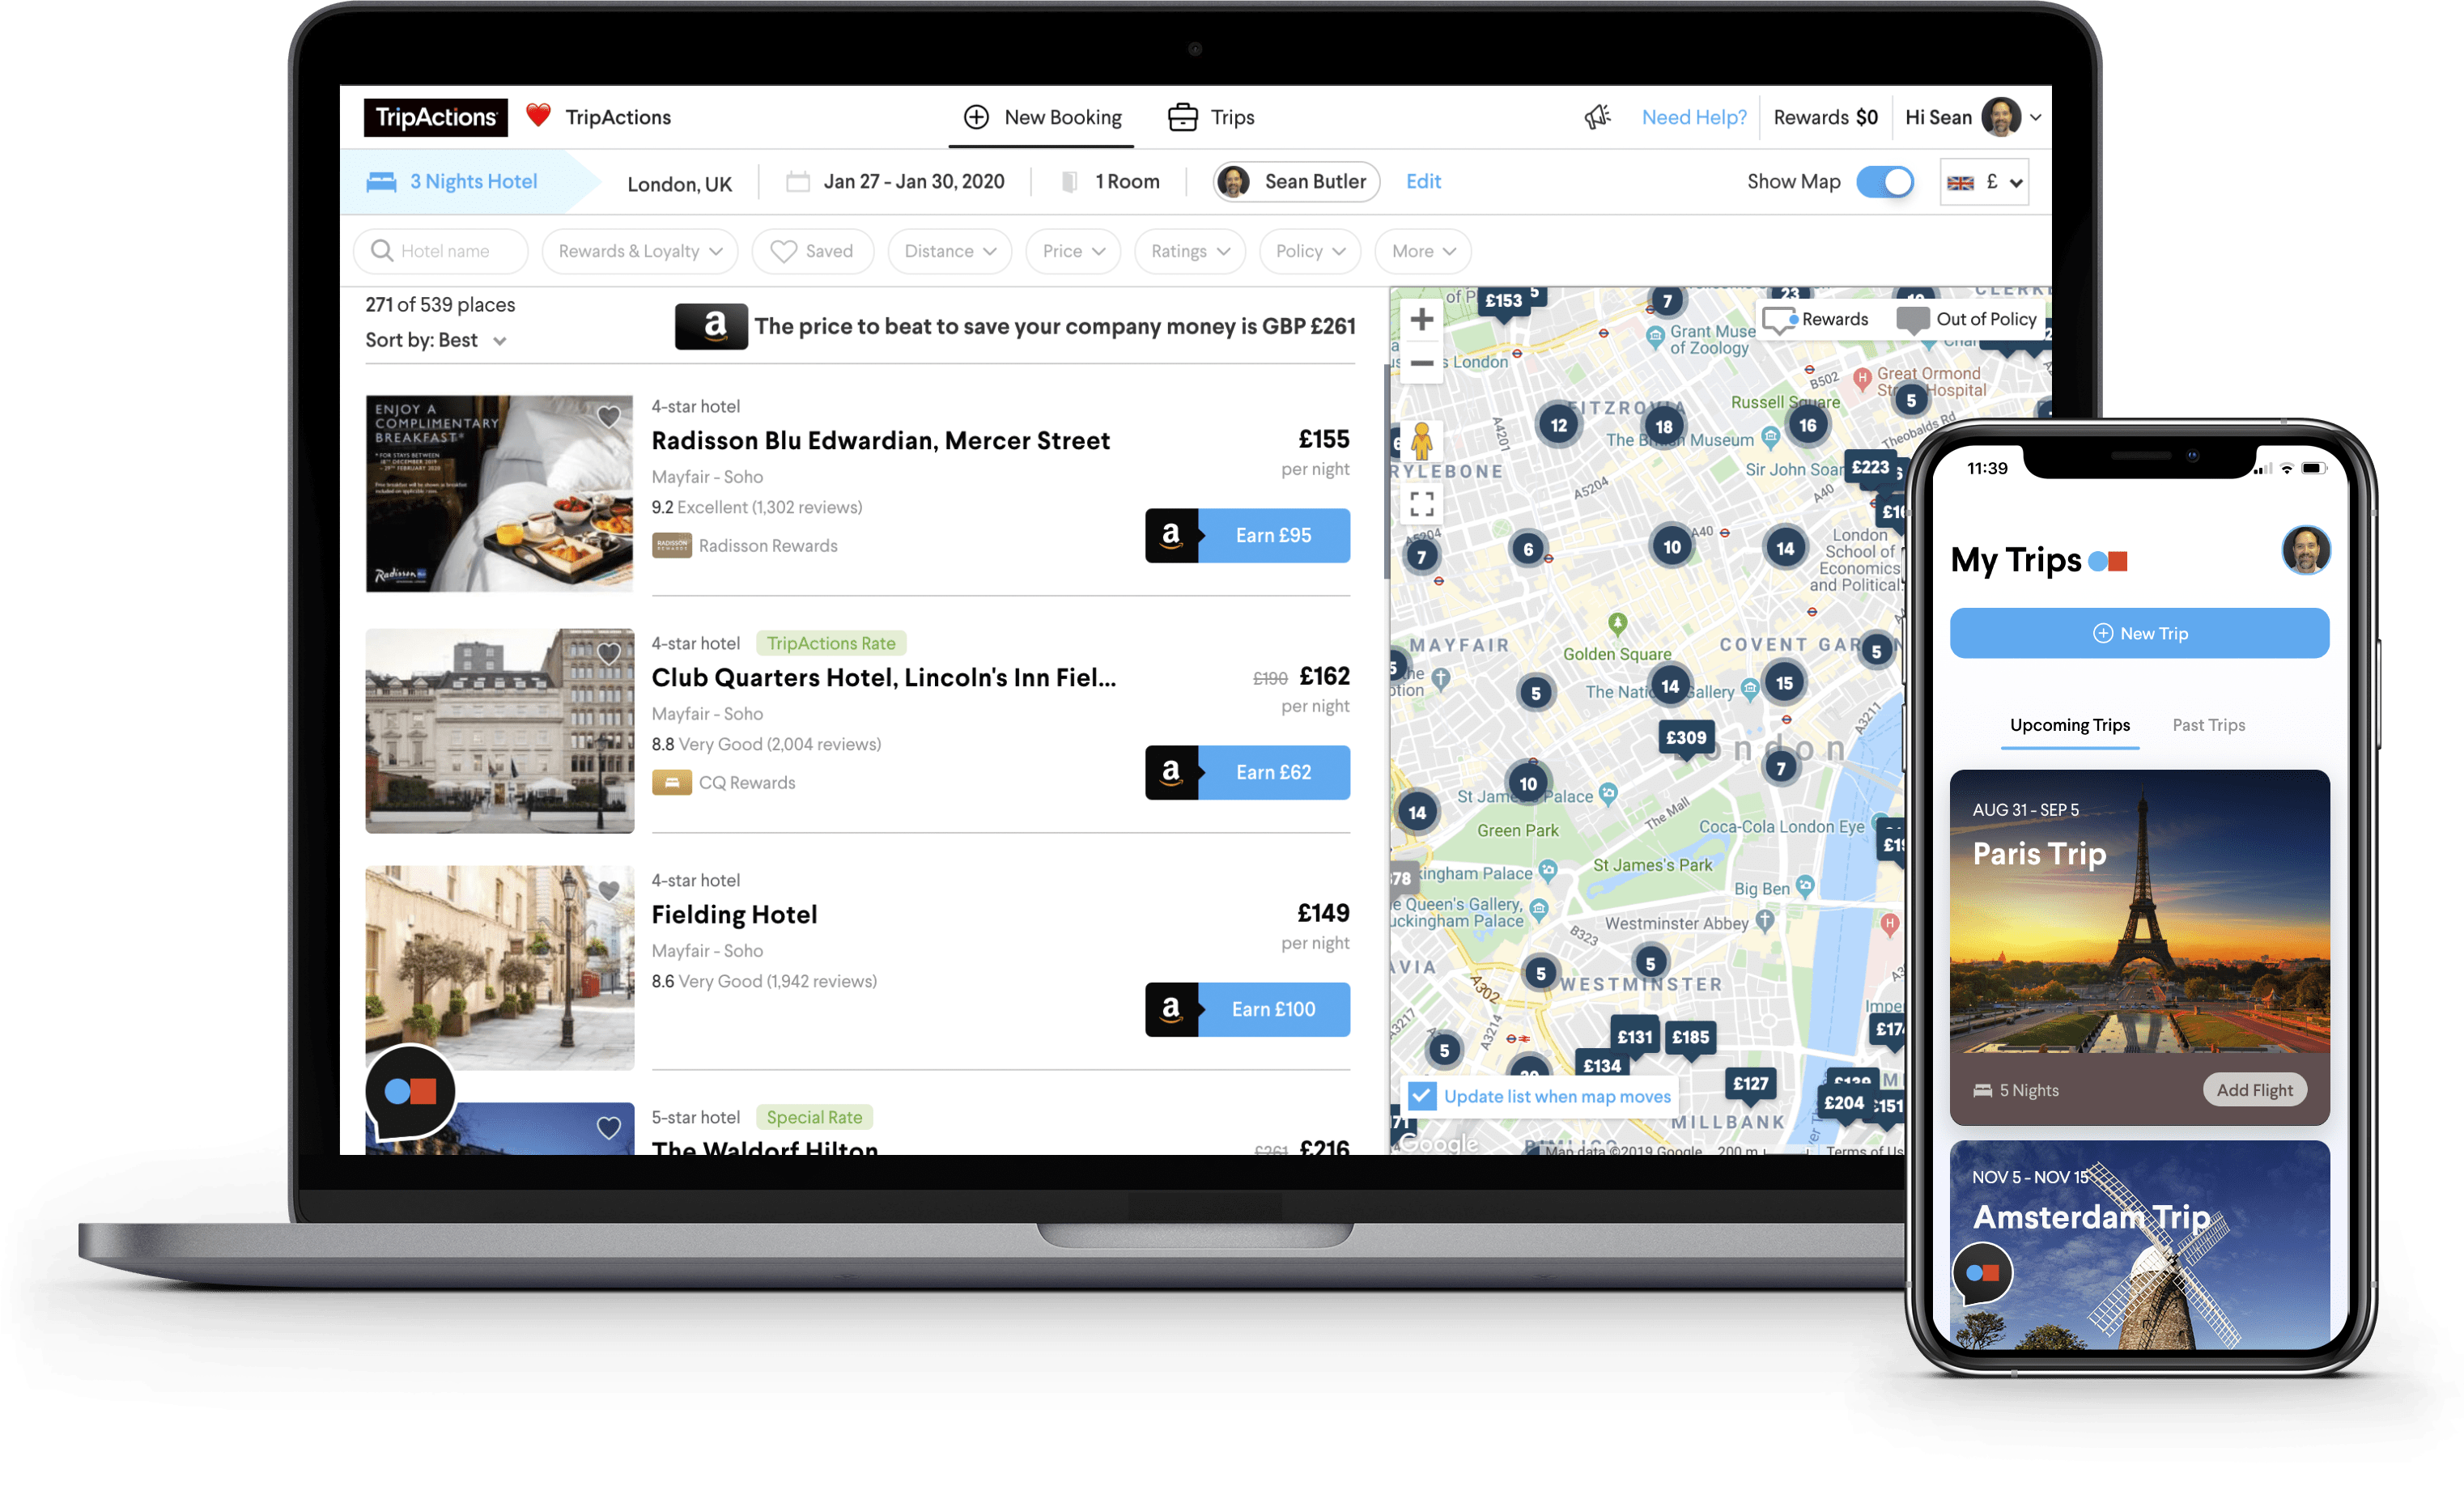 TripActions corporate travel management platform includes company savings dashboard, an unrivaled inventory and mobile itineraries